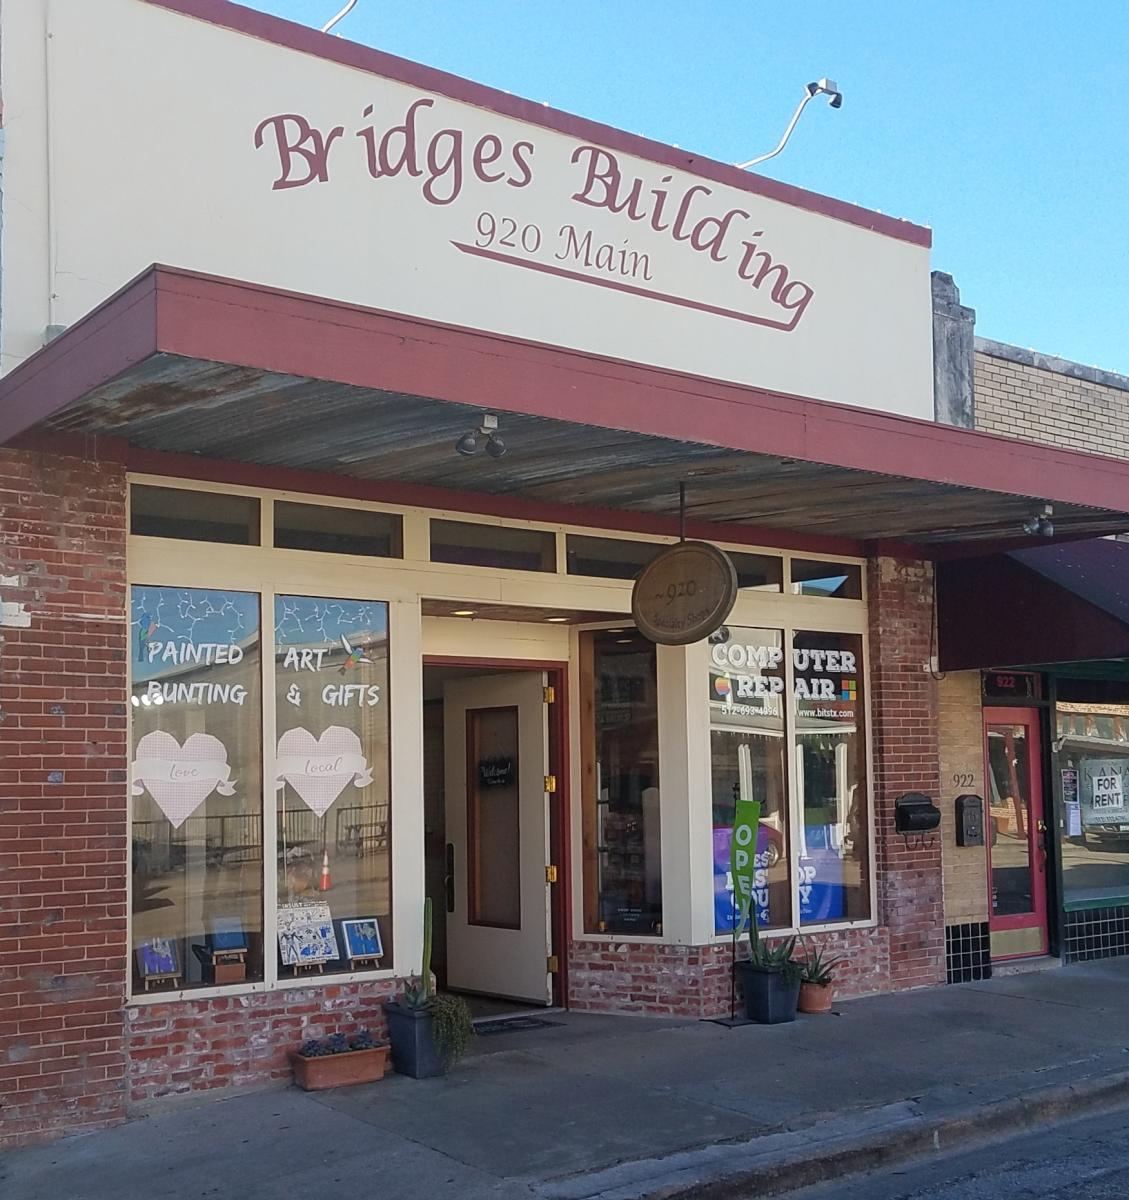 The Bridges Emporium Building Exterior in Bastrop